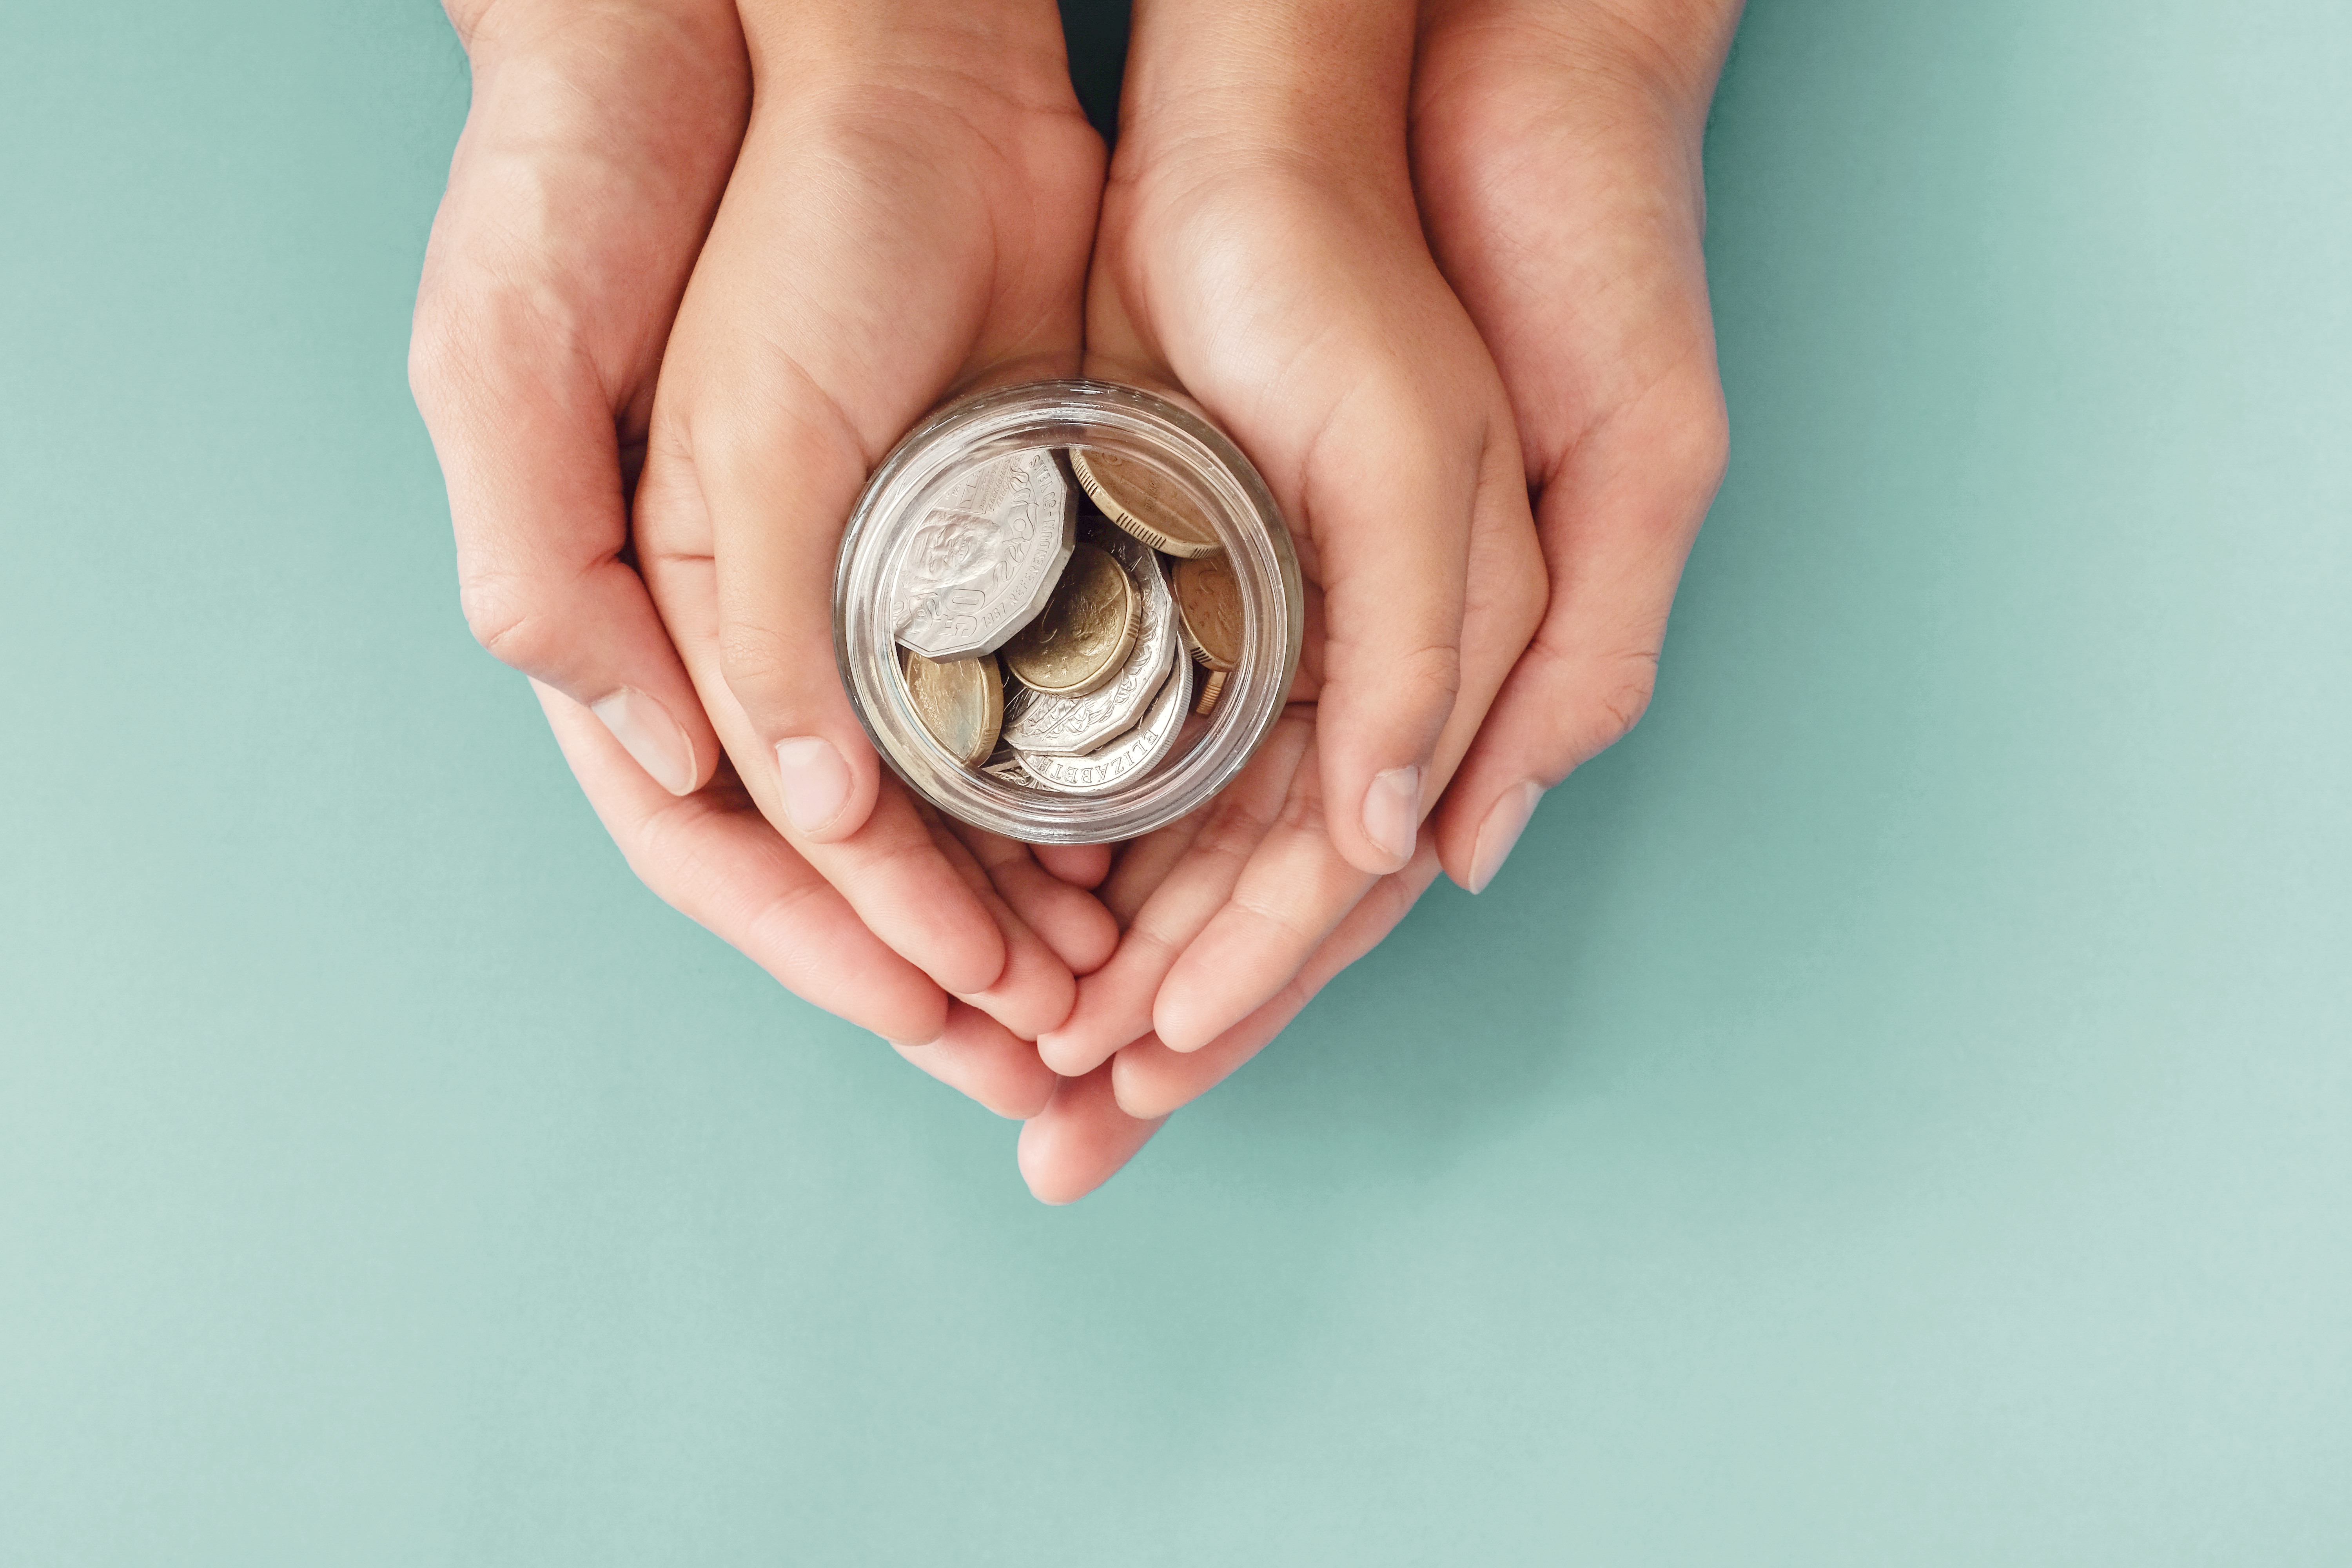 child-and-parent-hands-holding-money-jar-donation-saving-family-finance-plan-concept